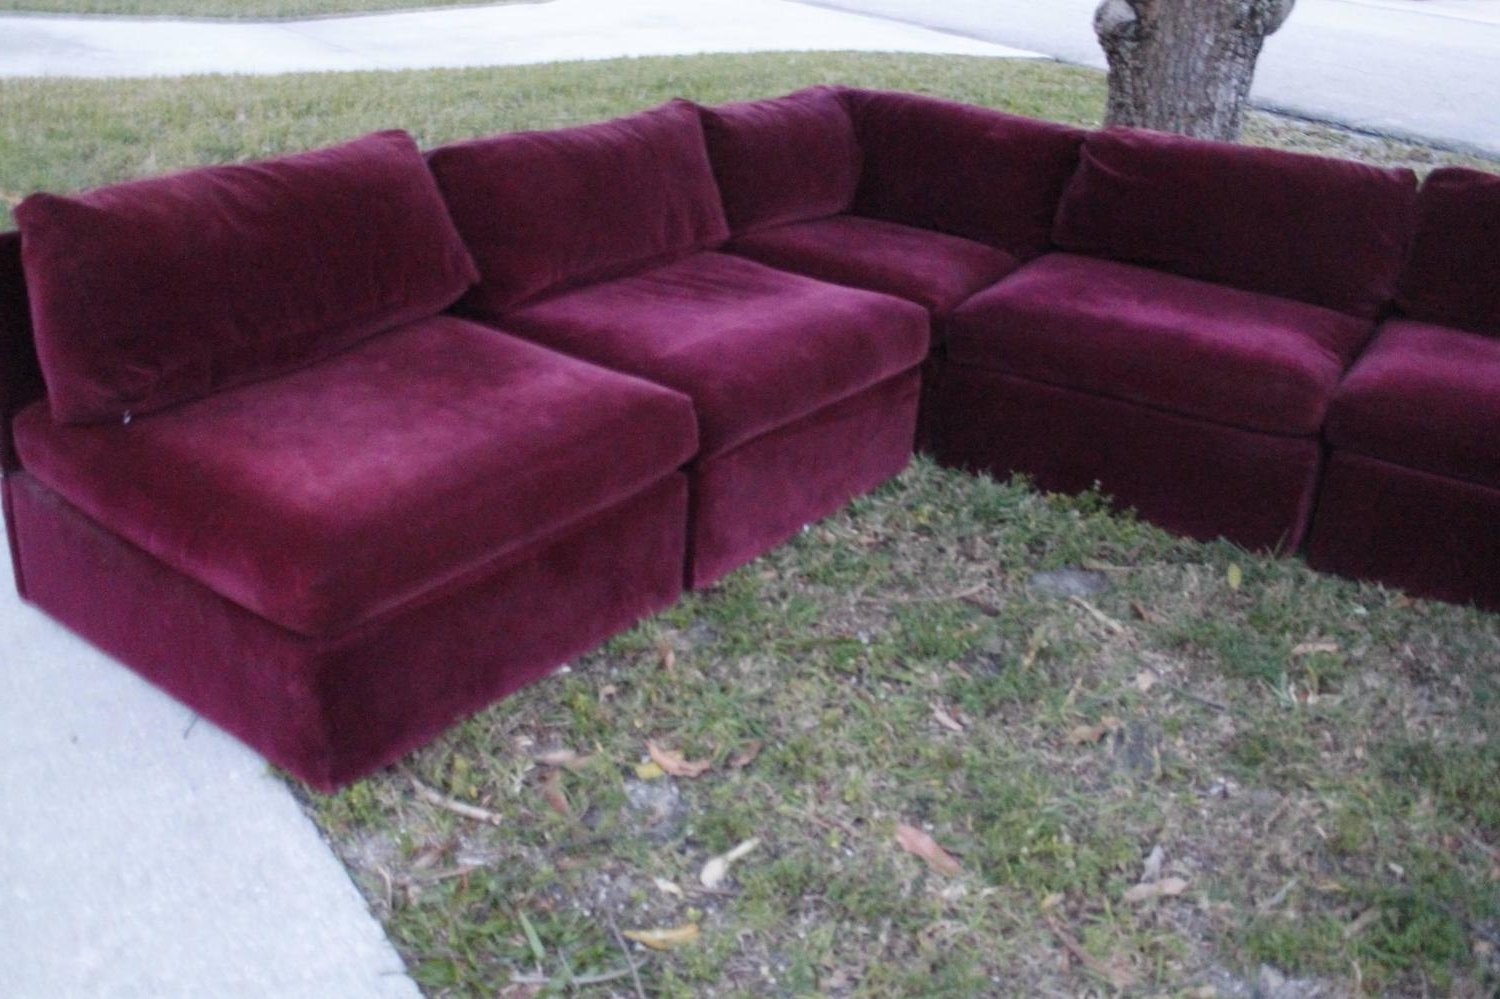 Vintage Sectional Sofas Throughout Favorite Milo Baughman For Thayer Coggin Tagged Nine Piece Sectional Sofa (View 10 of 15)